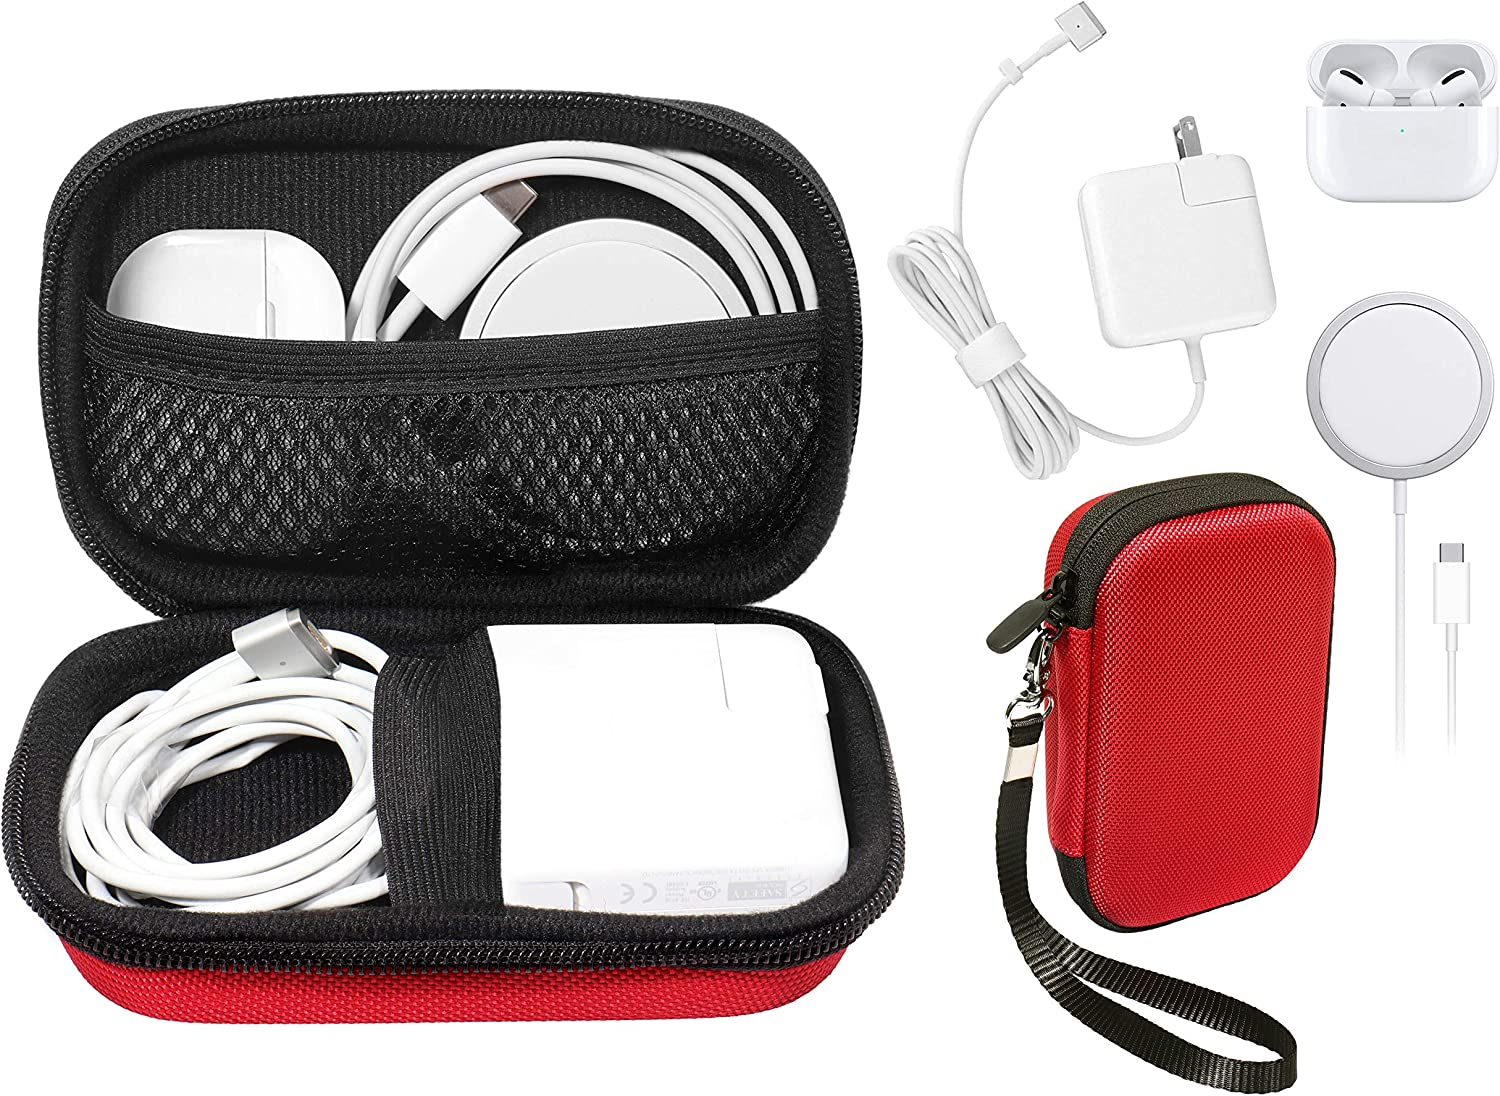 Handy Case for MacBook Pro, Air Power Adapter, MagSafe, MagSafe2, iPhone 12/12 Pro MagSafe Charger, USB C Hub, Type C Hub, USB Multi Ports Type c hub, Detachable Wrist Strap, mesh Pocket (Red)